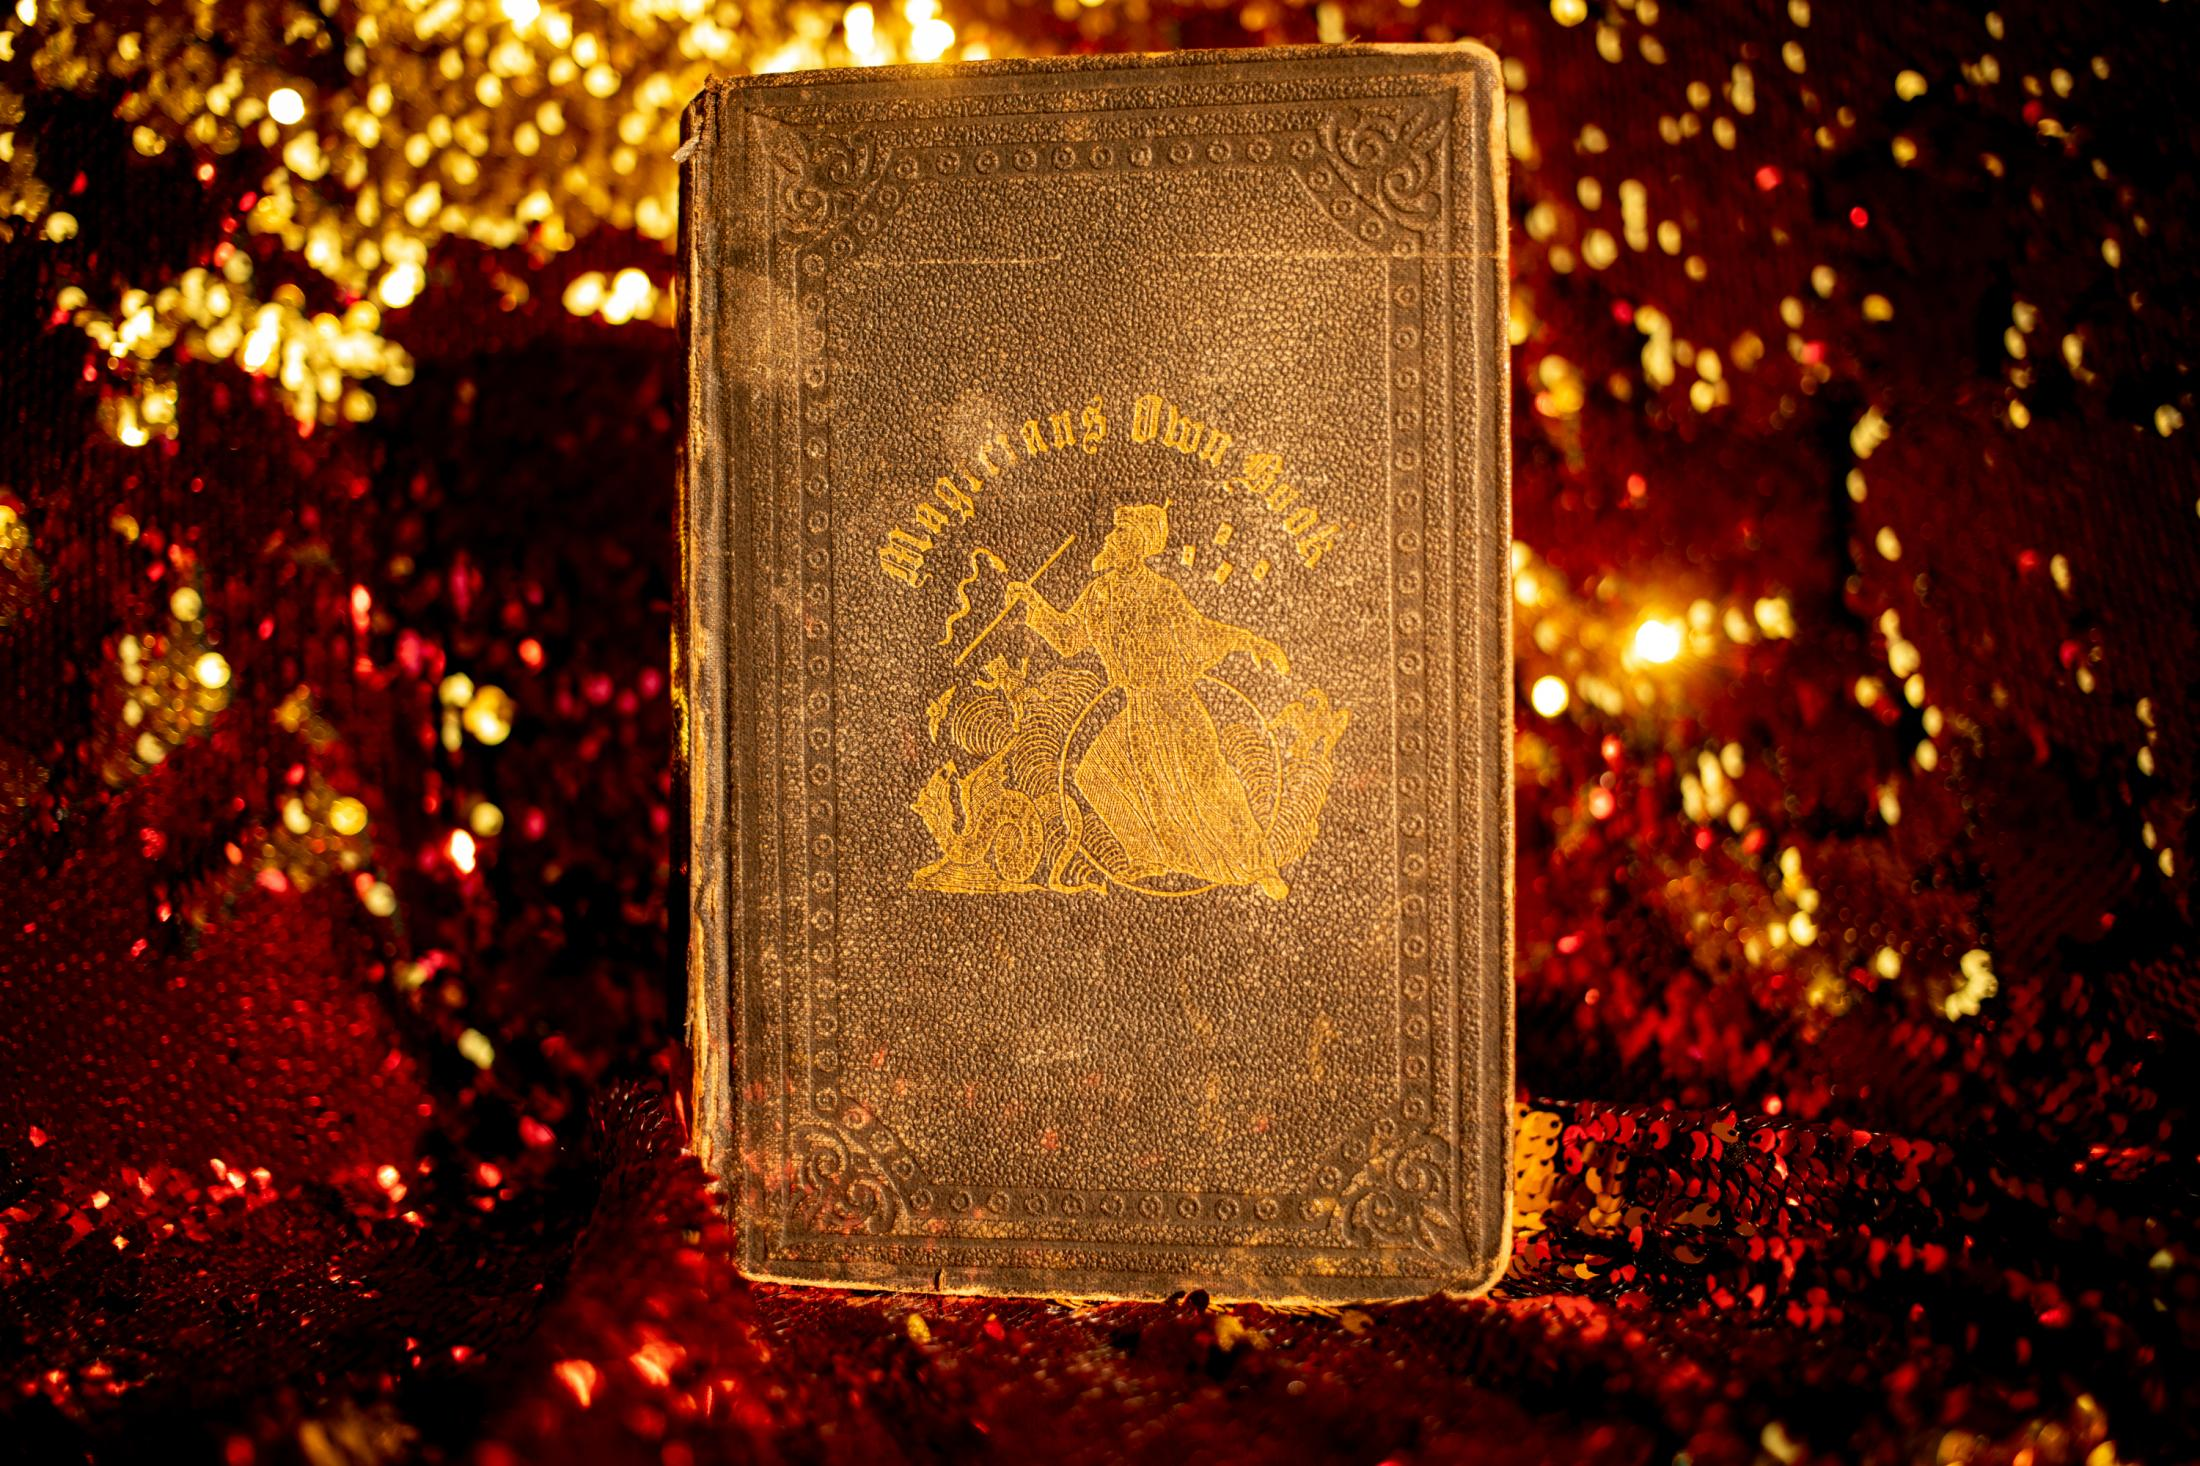 An old magic book that belongs to Elizabeth Messick. An old boyfirend gave it to her as a present.